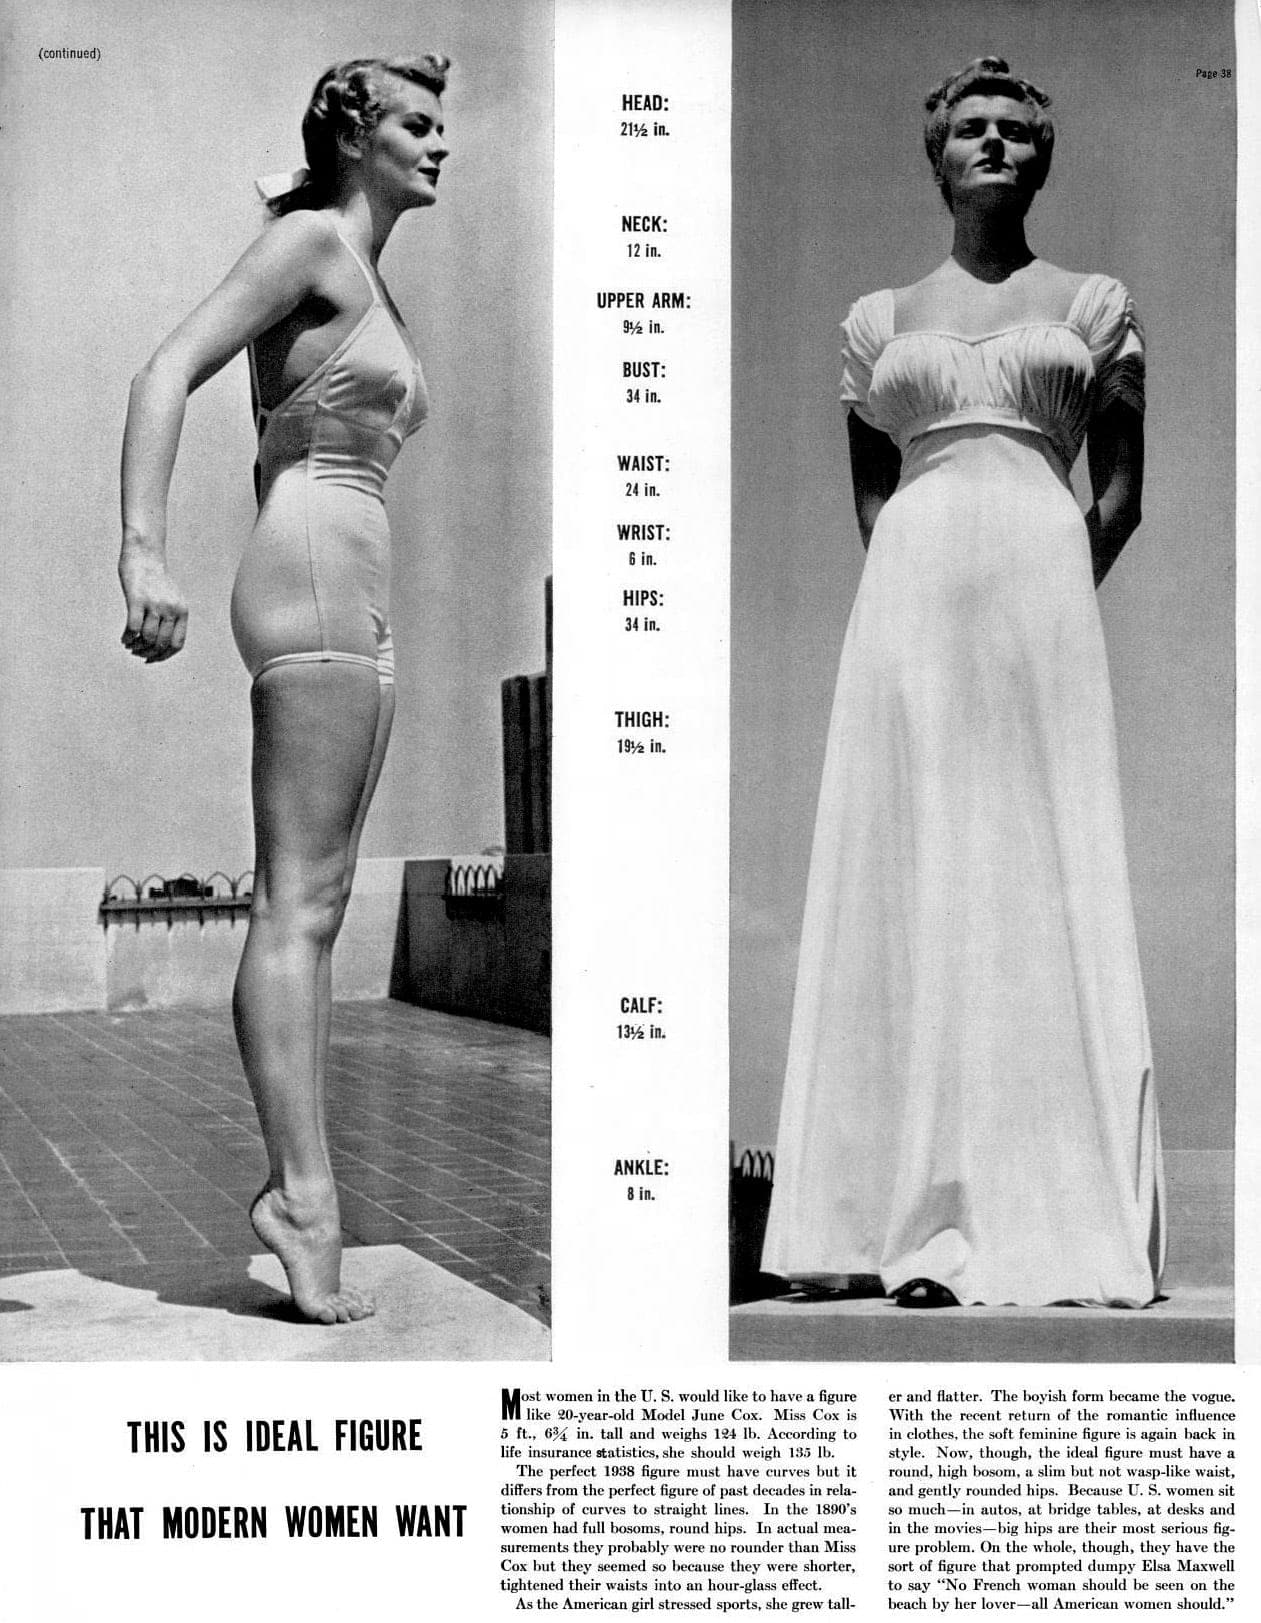 The perfect woman's figure (1938)